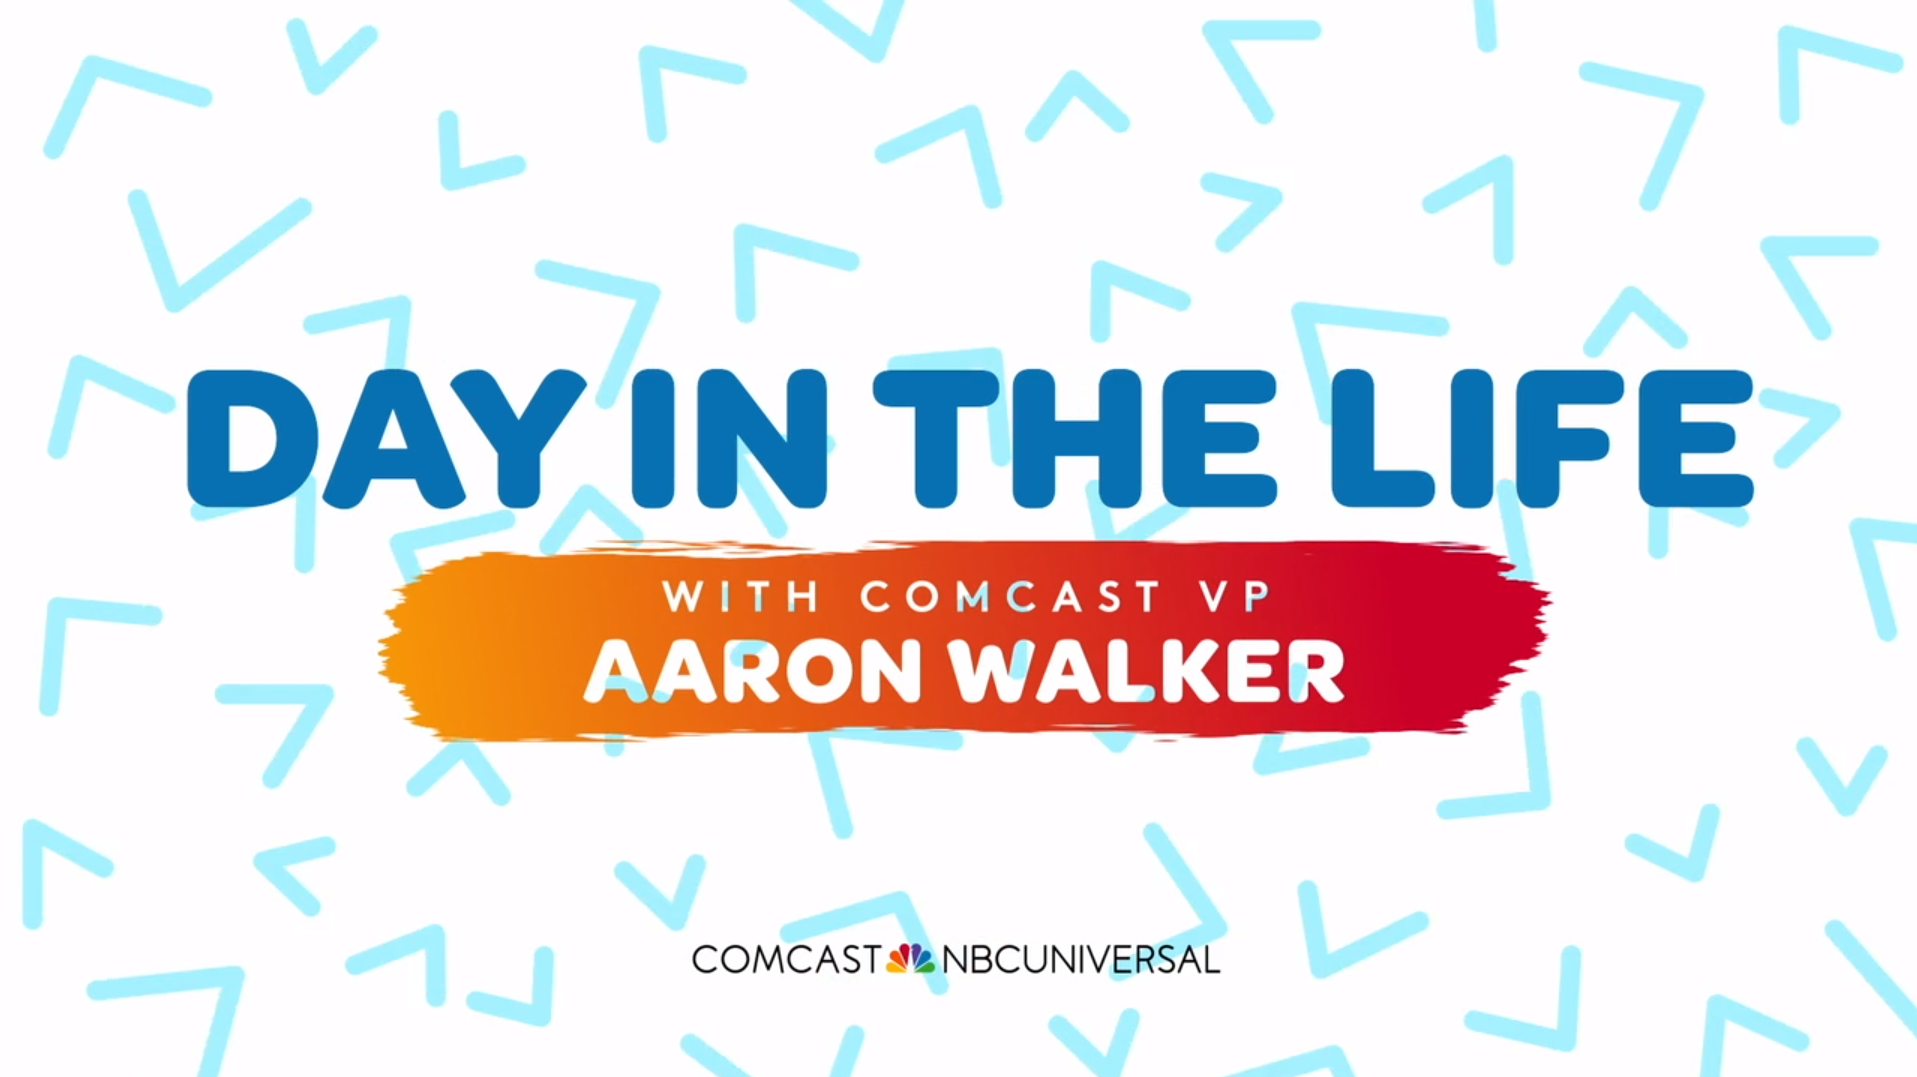 A Day in the Life of Comcast Area Vice President Aaron Walker